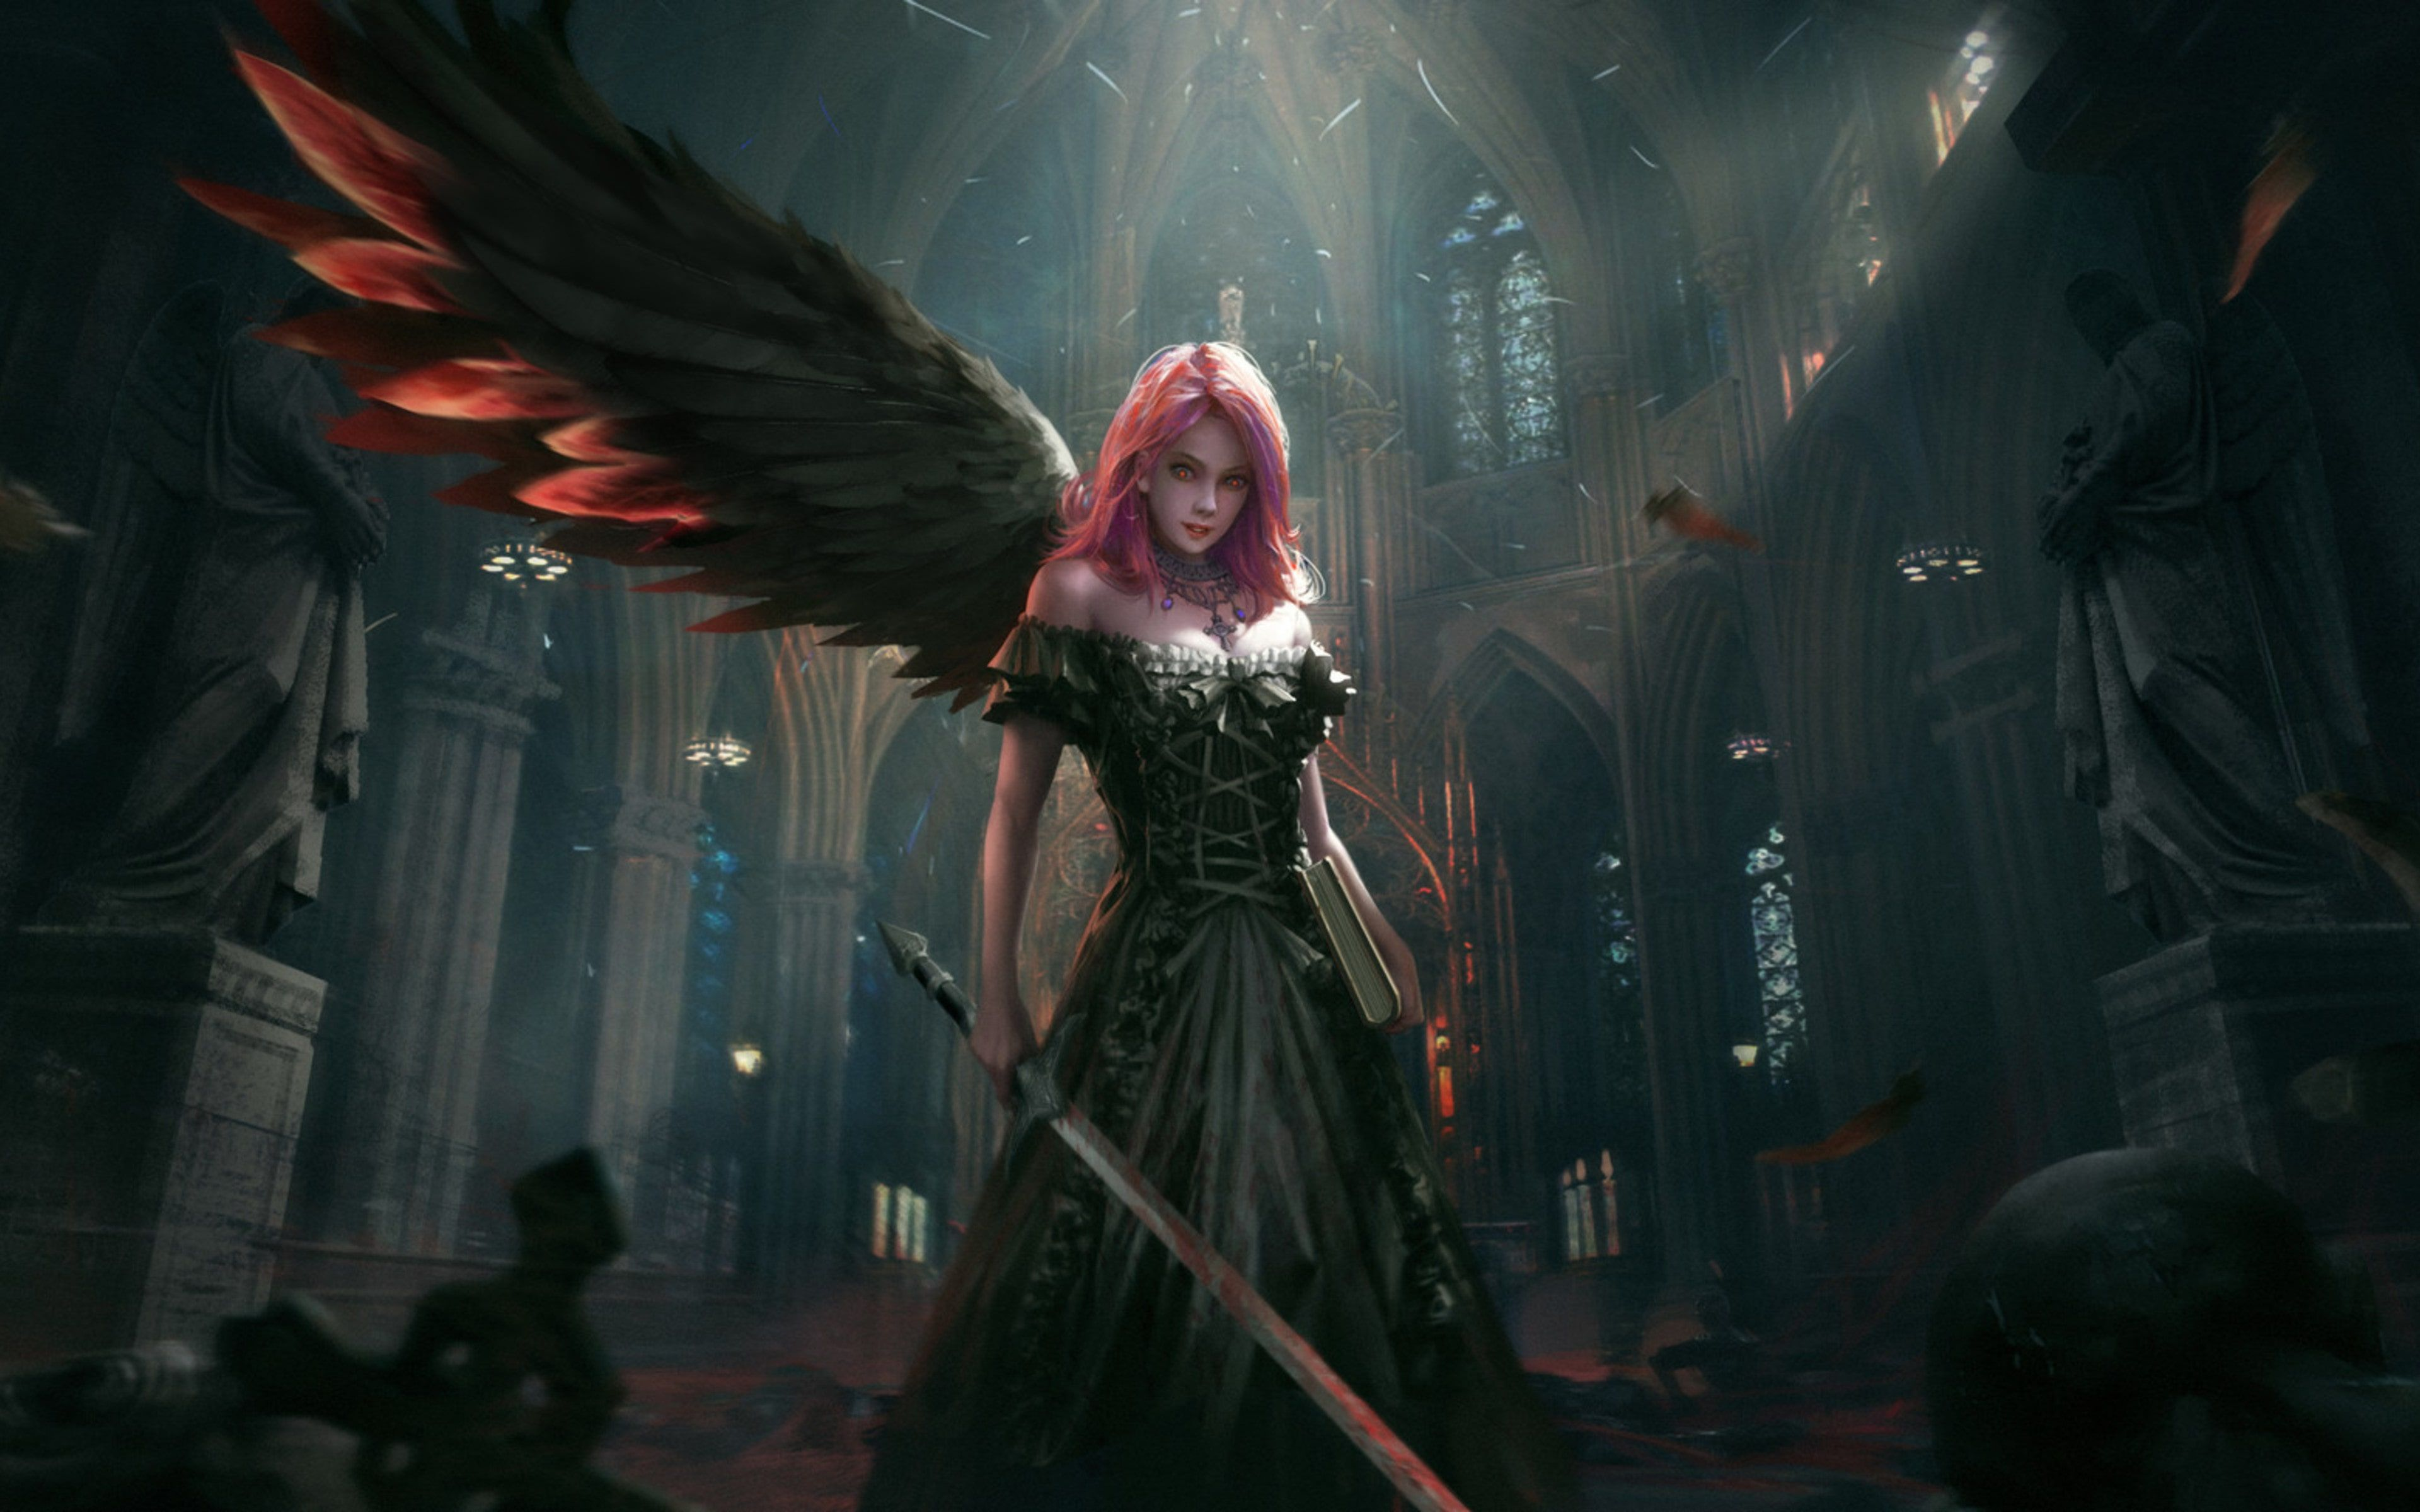 Dark Angel Epic Artwork Is An HD Desktop Wallpaper Posted In Our Free Image Collection Of Fantasy Wallpapers